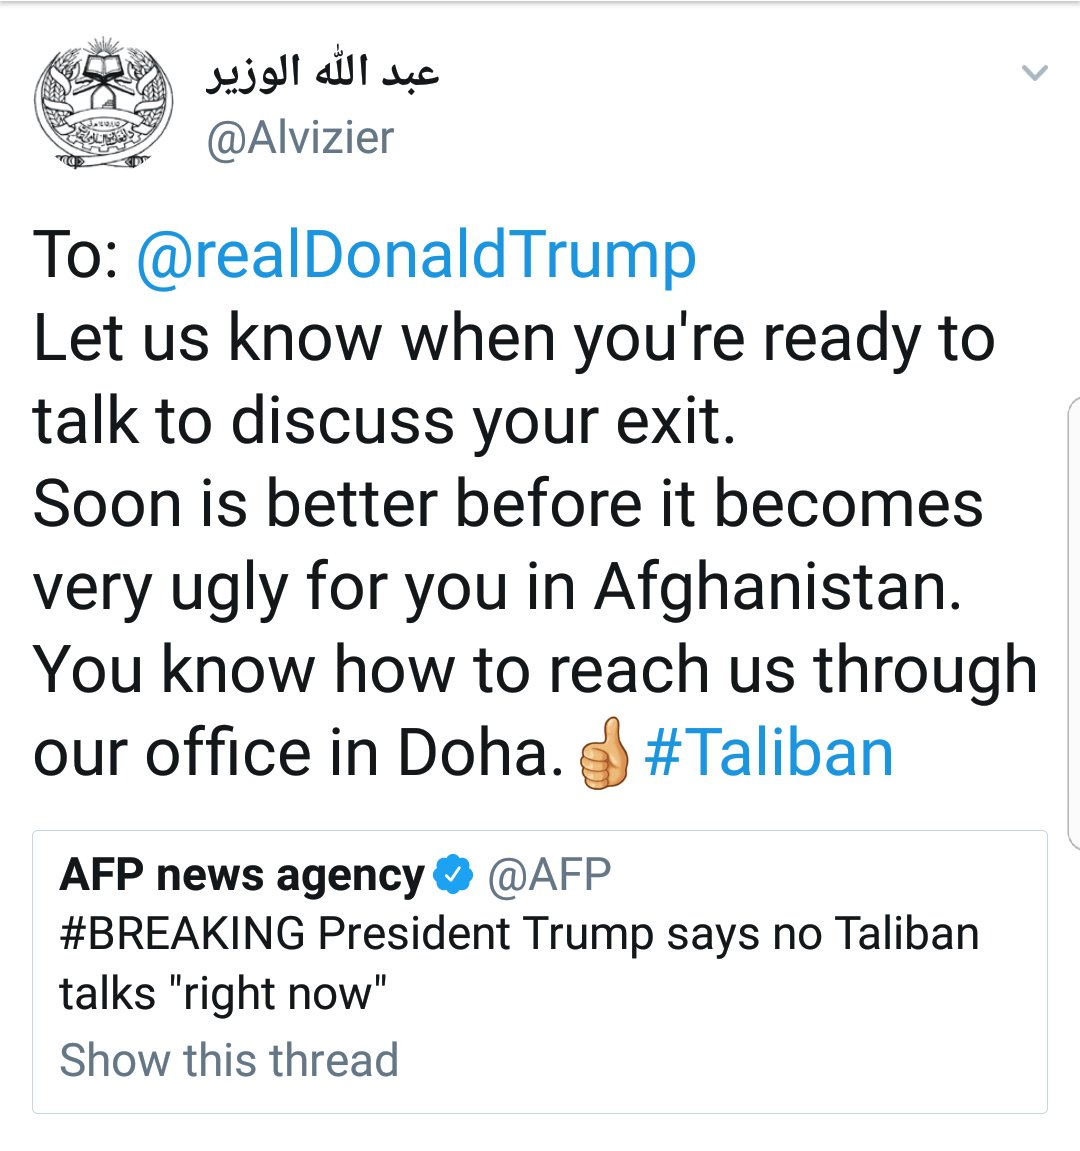 Crazy times. The media office of the Taliban asking President Trump on Twitter to reach the Taliban through their office in Doha 'once you're ready to discuss your exit' from Afghanistan. @akhbar